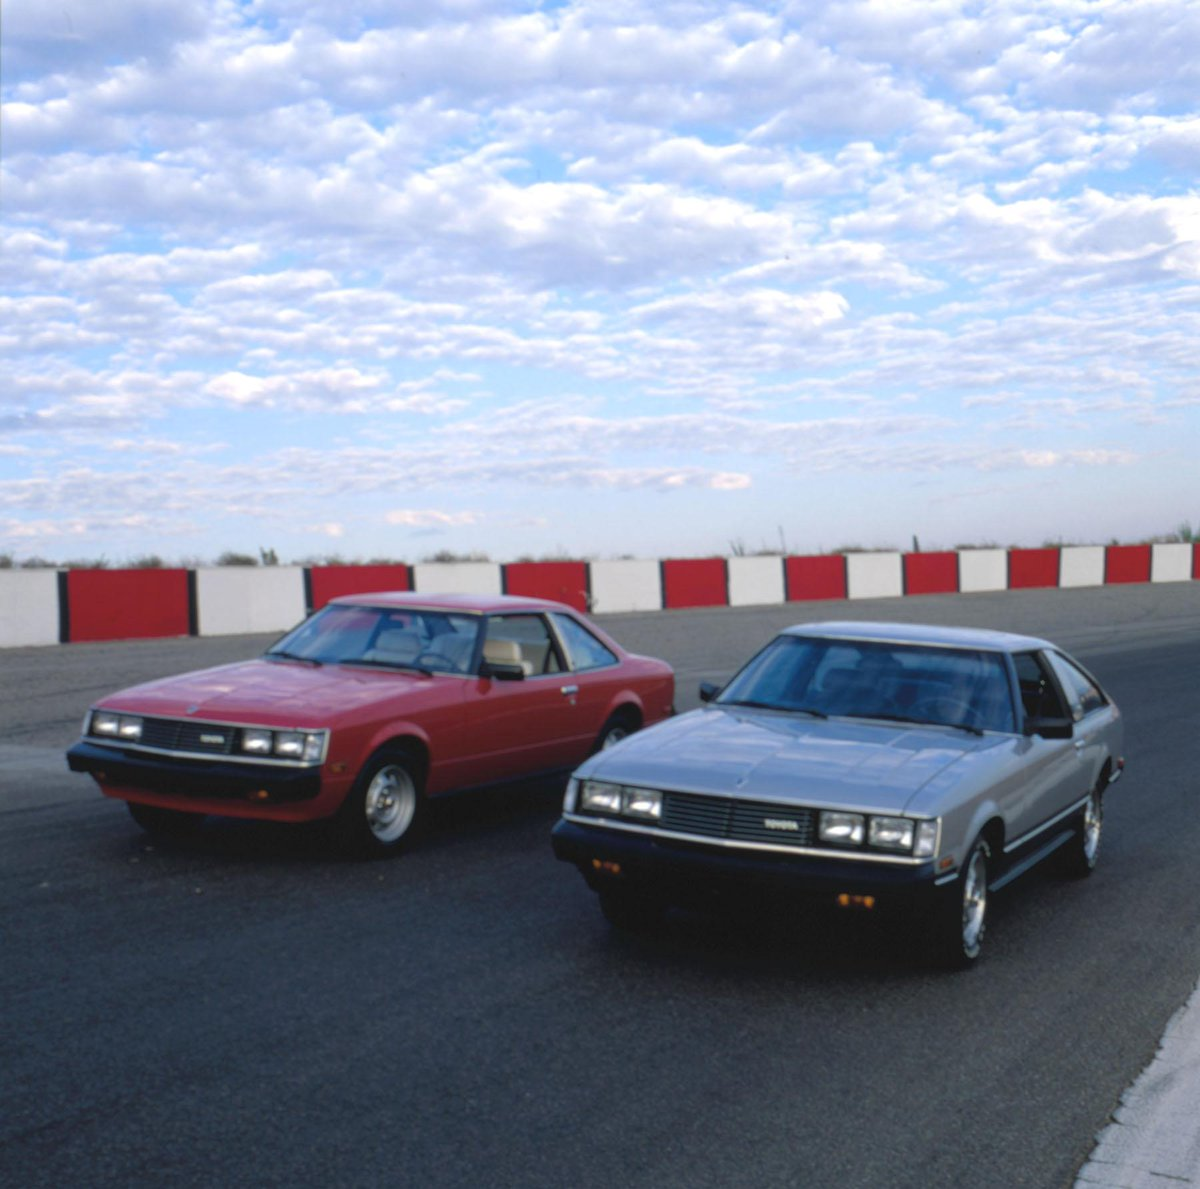 test Twitter Media - It takes two to make a thing go right. ❤️💙 Celica #Supra #ShowYourSupra https://t.co/xlJBks8zgS